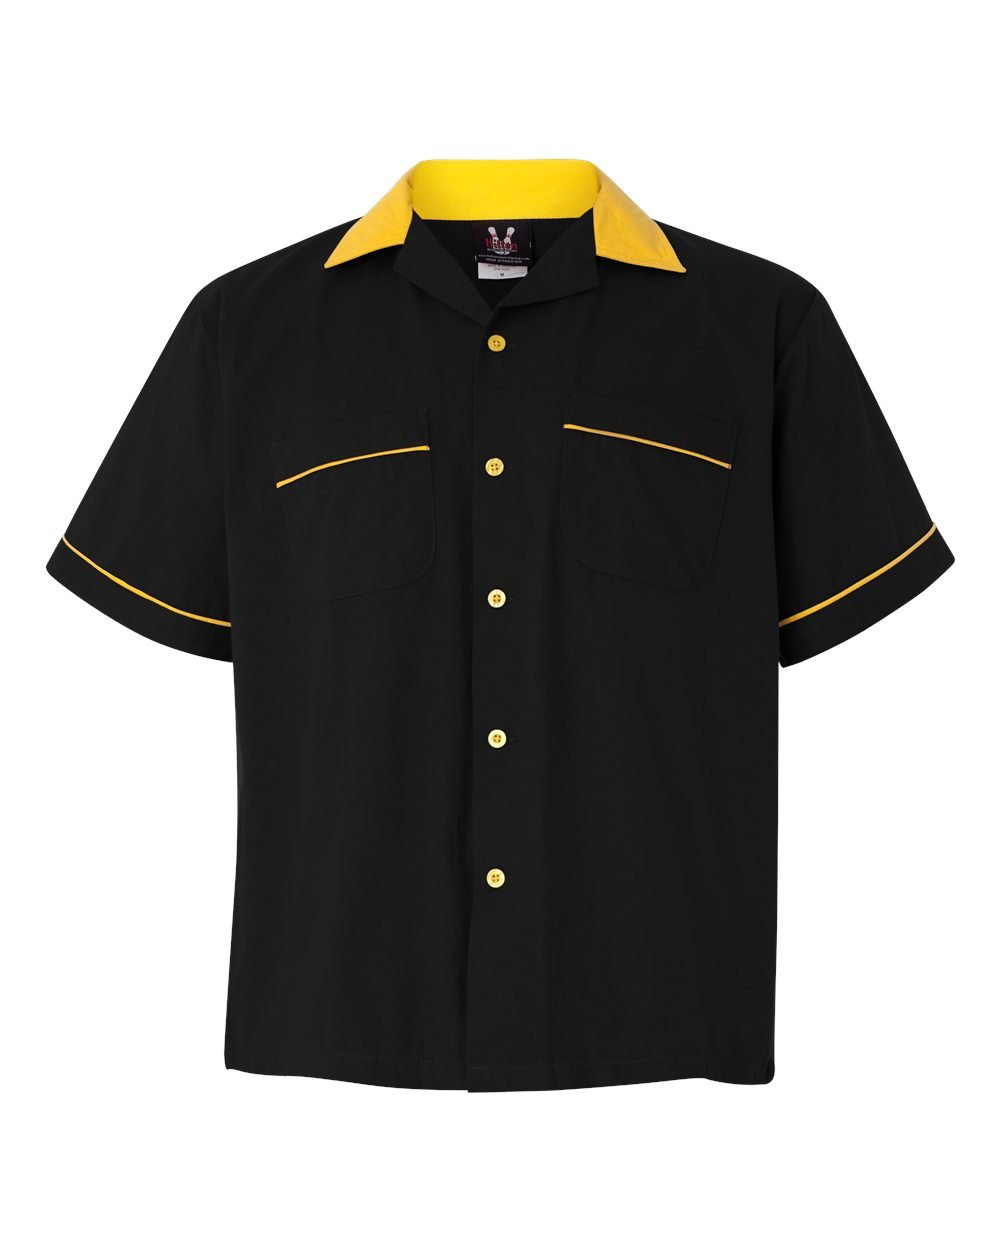 Hilton Bowling Retro GM Legend, Black/Gold, Medium by Hilton